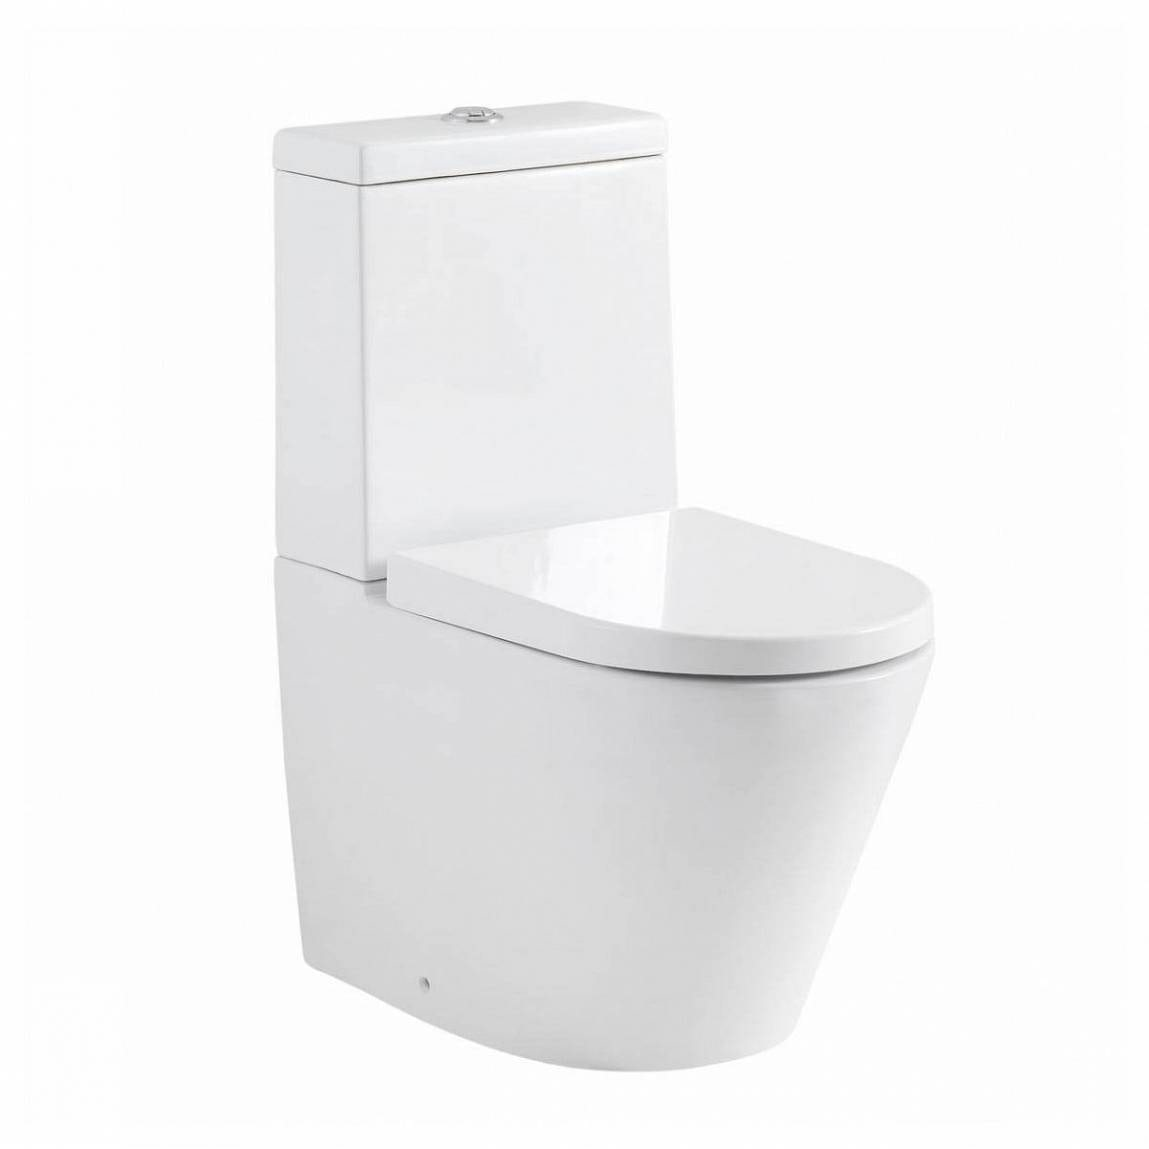 demar close coupled toilet with soft close toilet seat. Black Bedroom Furniture Sets. Home Design Ideas